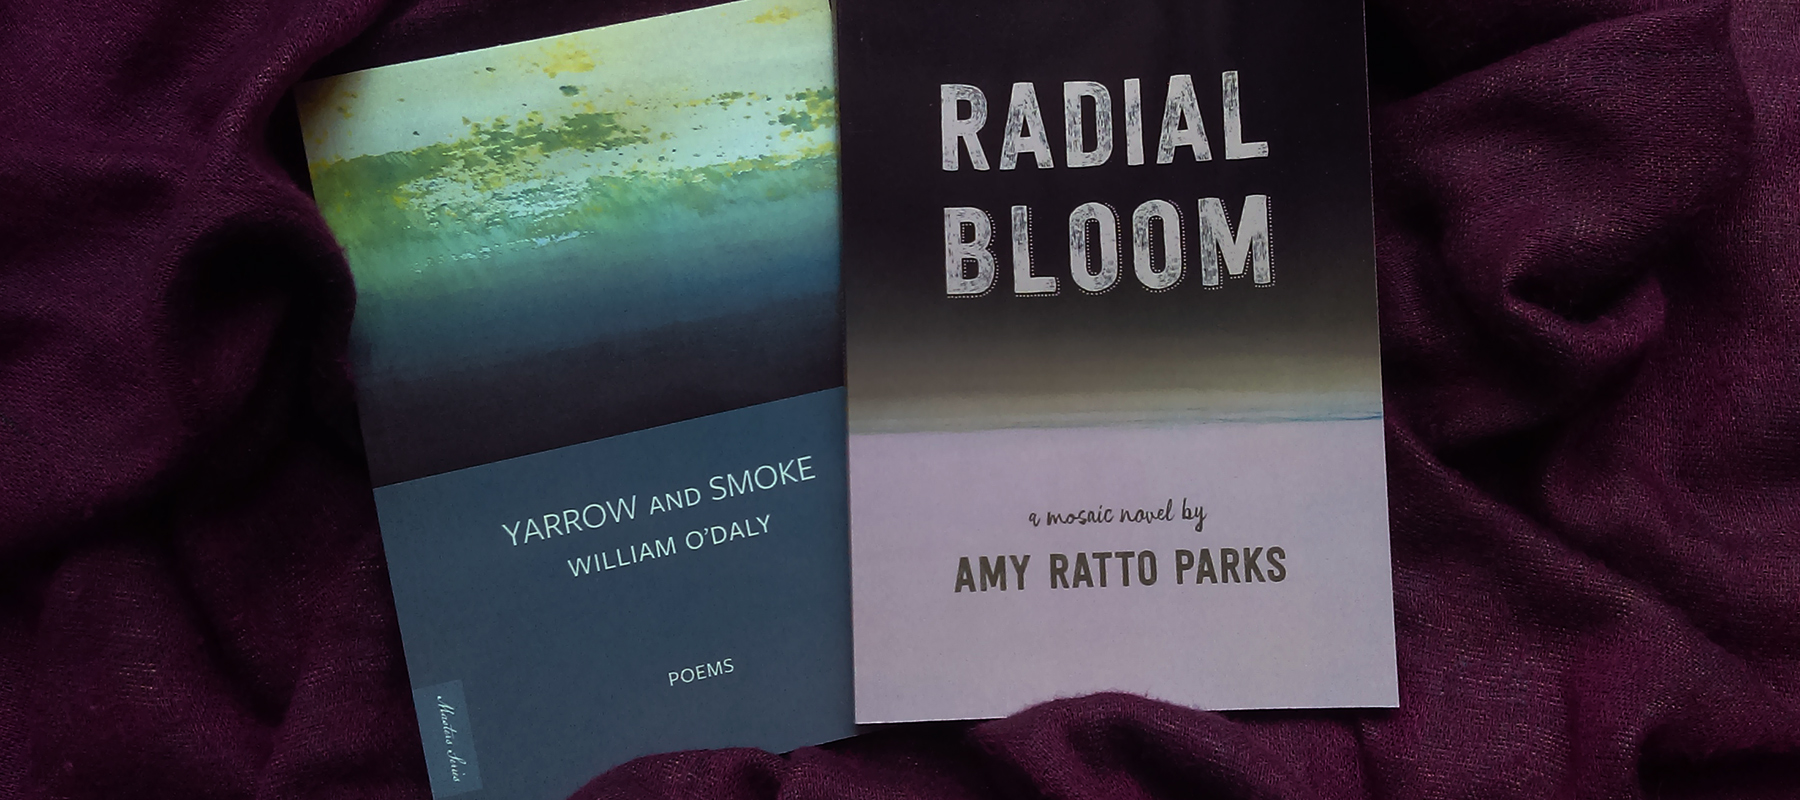 cover of Radial Bloom and Yarrow and Smoke